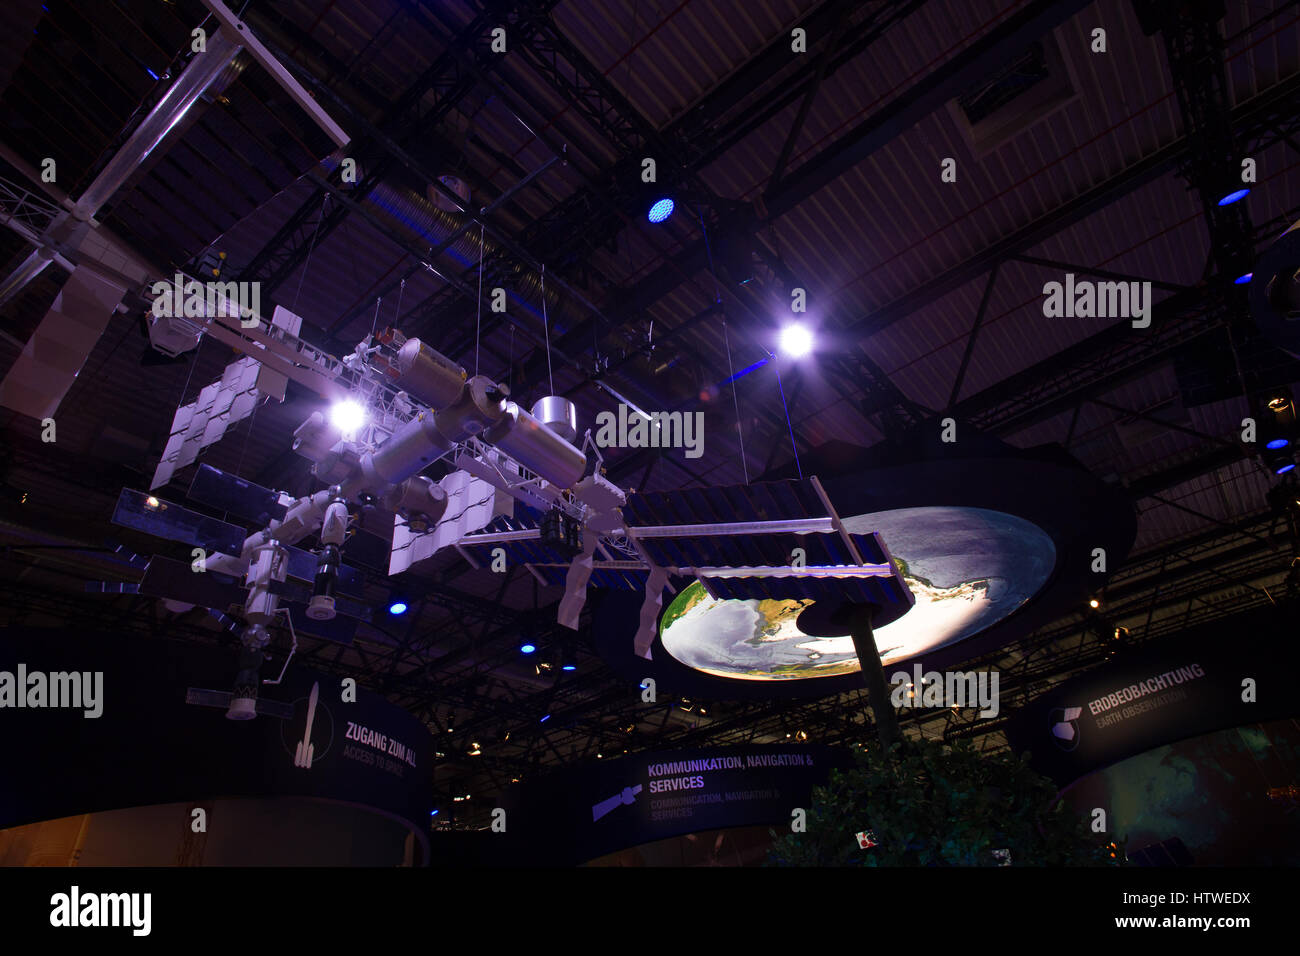 Satellite and International Space Station ISS model in space center exhibition - Stock Image